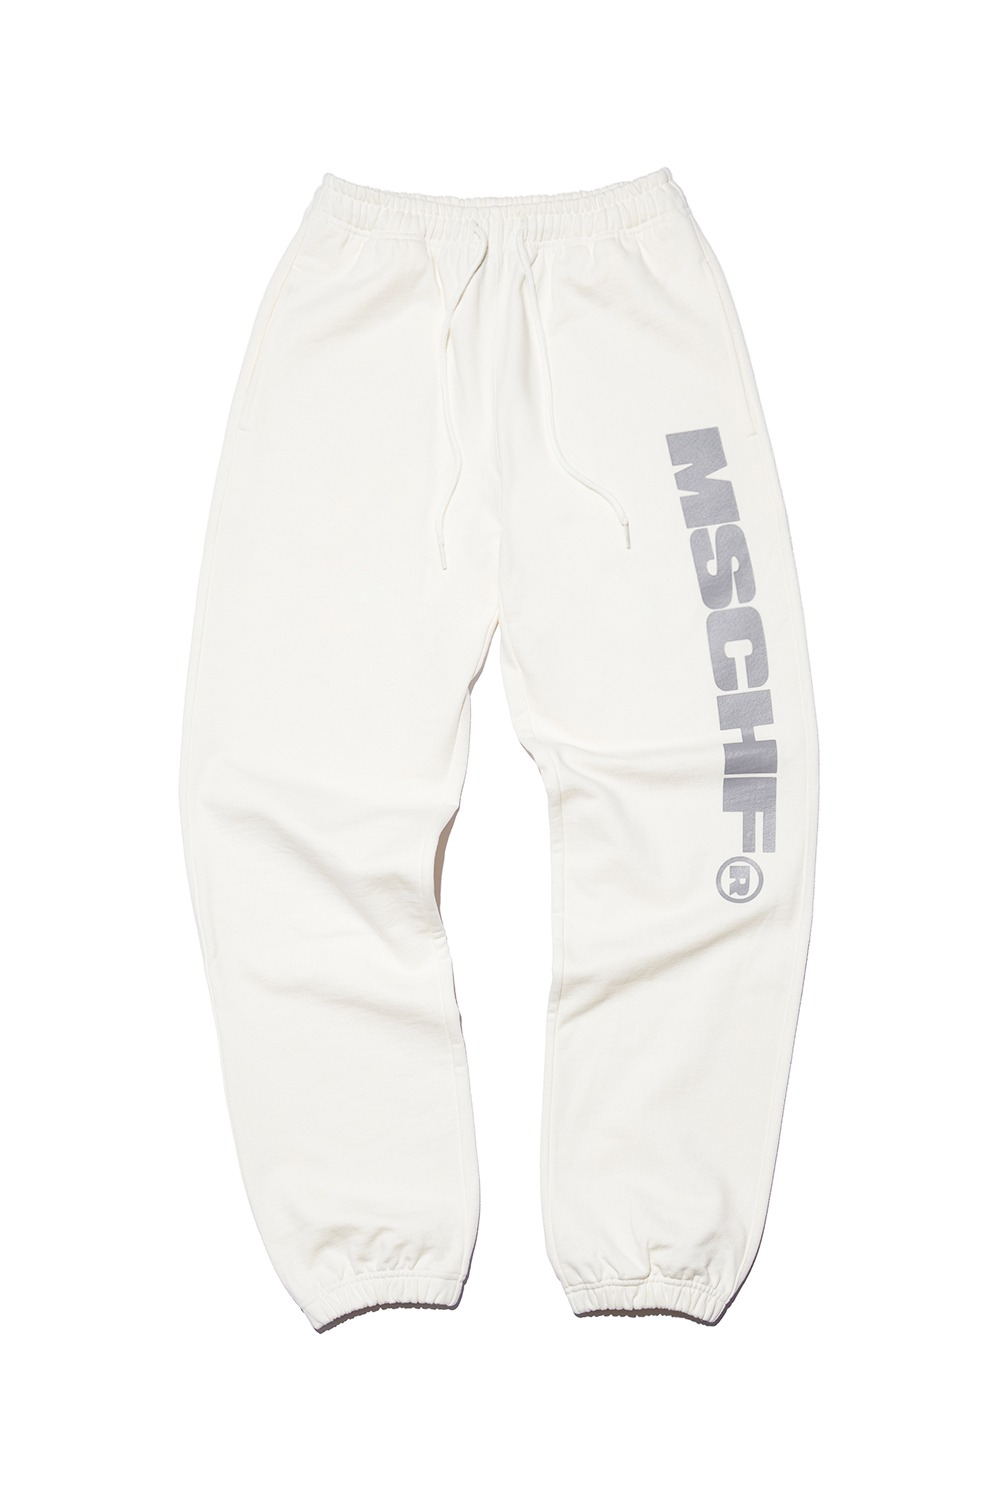 MSCHF SWEAT PANTS_white/gray